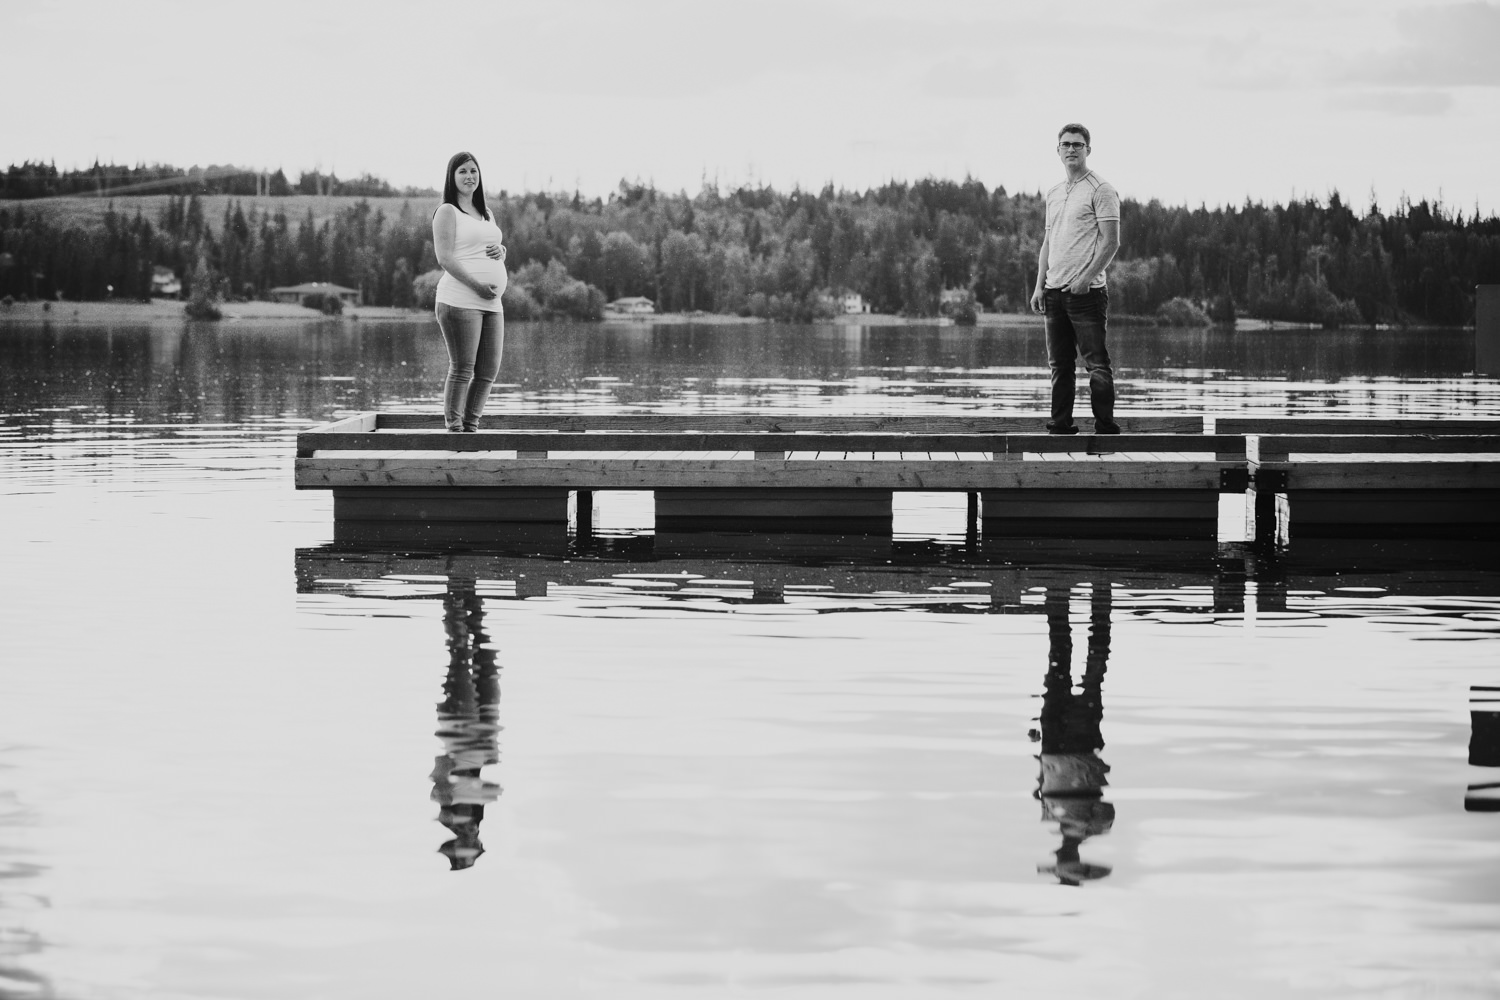 quesnel-bc-ten-mile-lake-maternity-session-quesnel-maternity-photographer-kelowna-maternity-photographers-okanagan-meternity-photographer (20 of 32).jpg